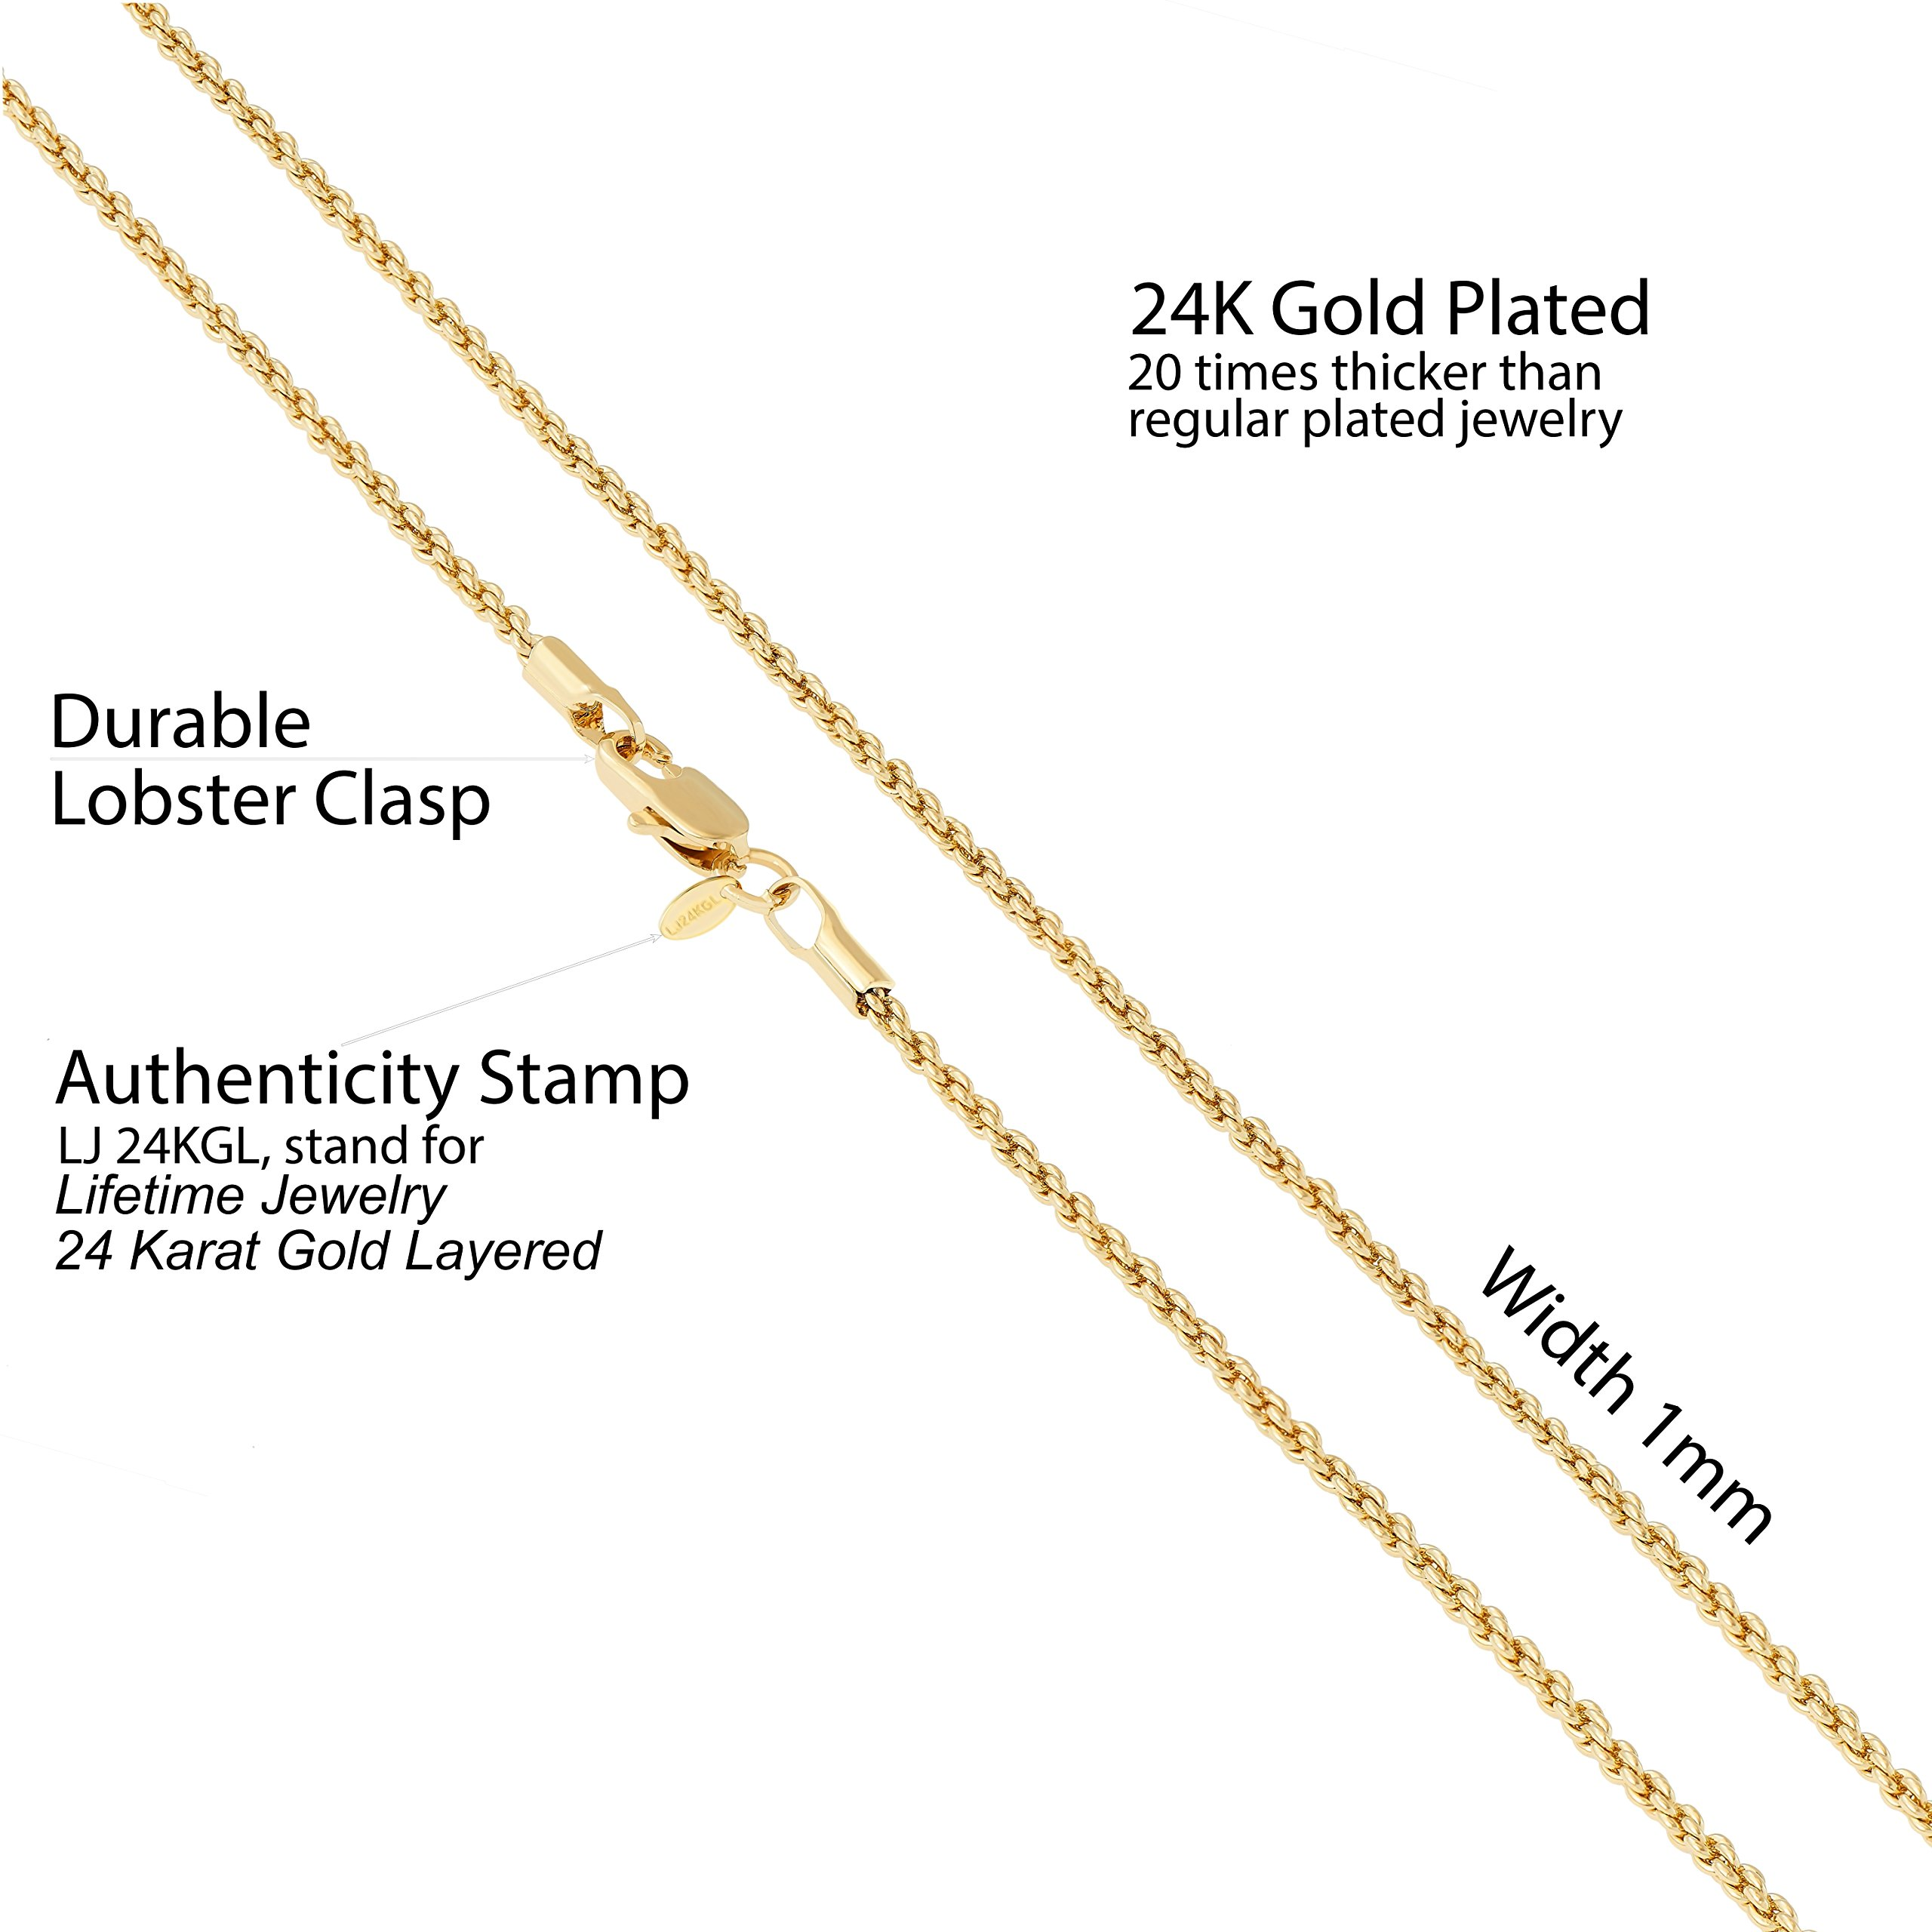 Lifetime Jewelry 1mm Rope Chain 24K White or Yellow Gold Plated Pendant Necklace for Men and Women Made Thin for Charms 16 to 30 Inches (22) by Lifetime Jewelry (Image #4)